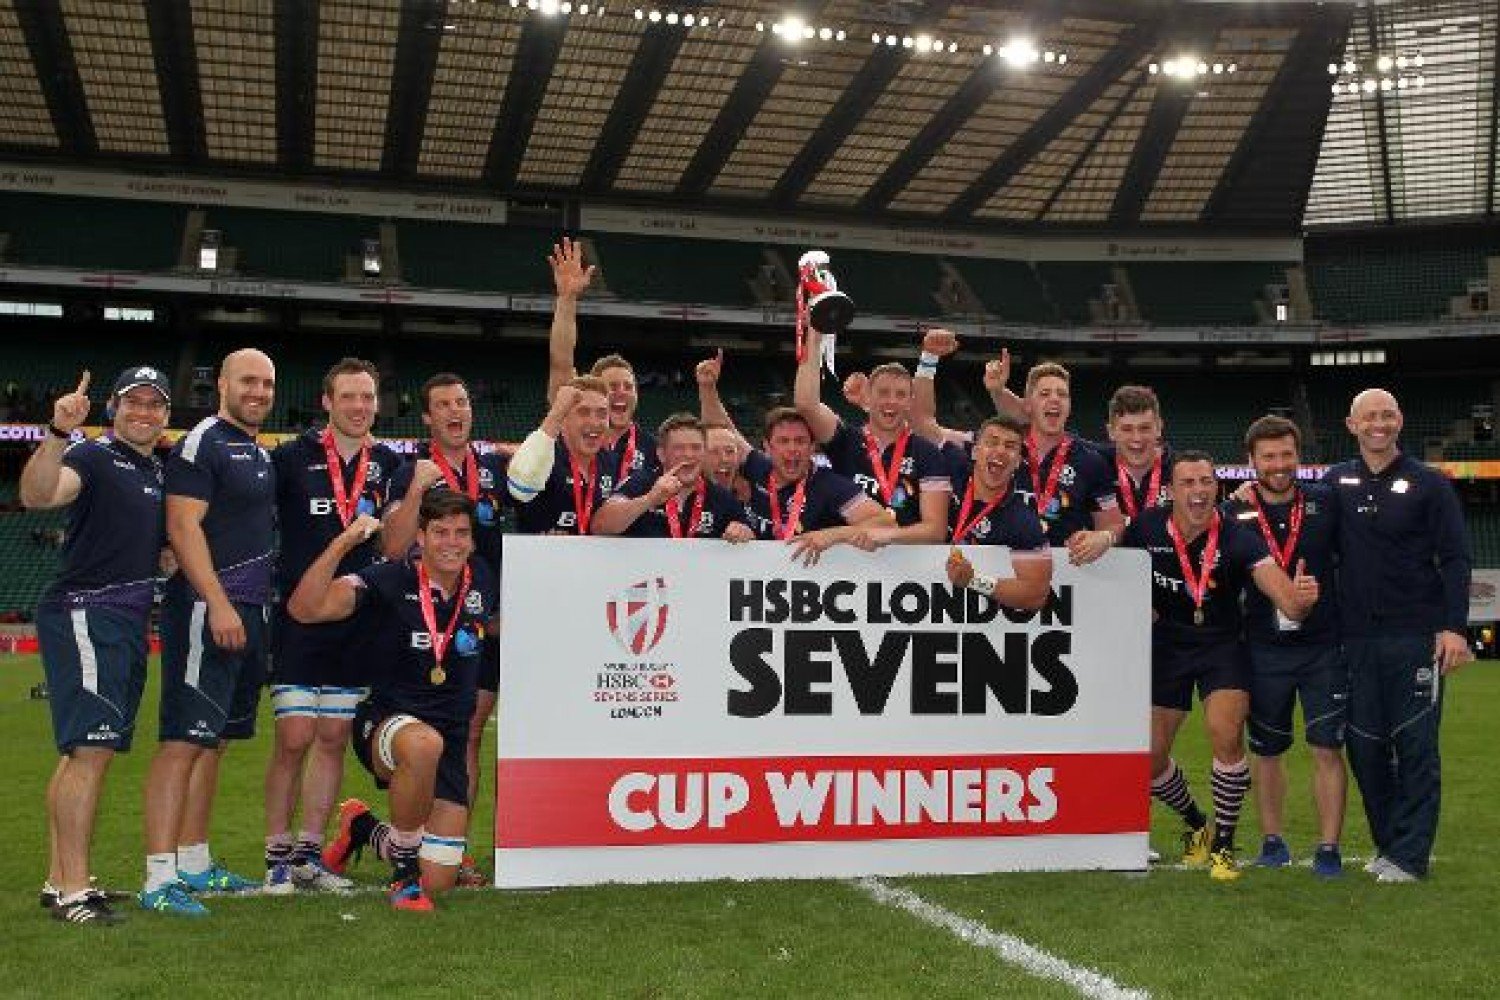 London Sevens - Saving the Best 'til Last!